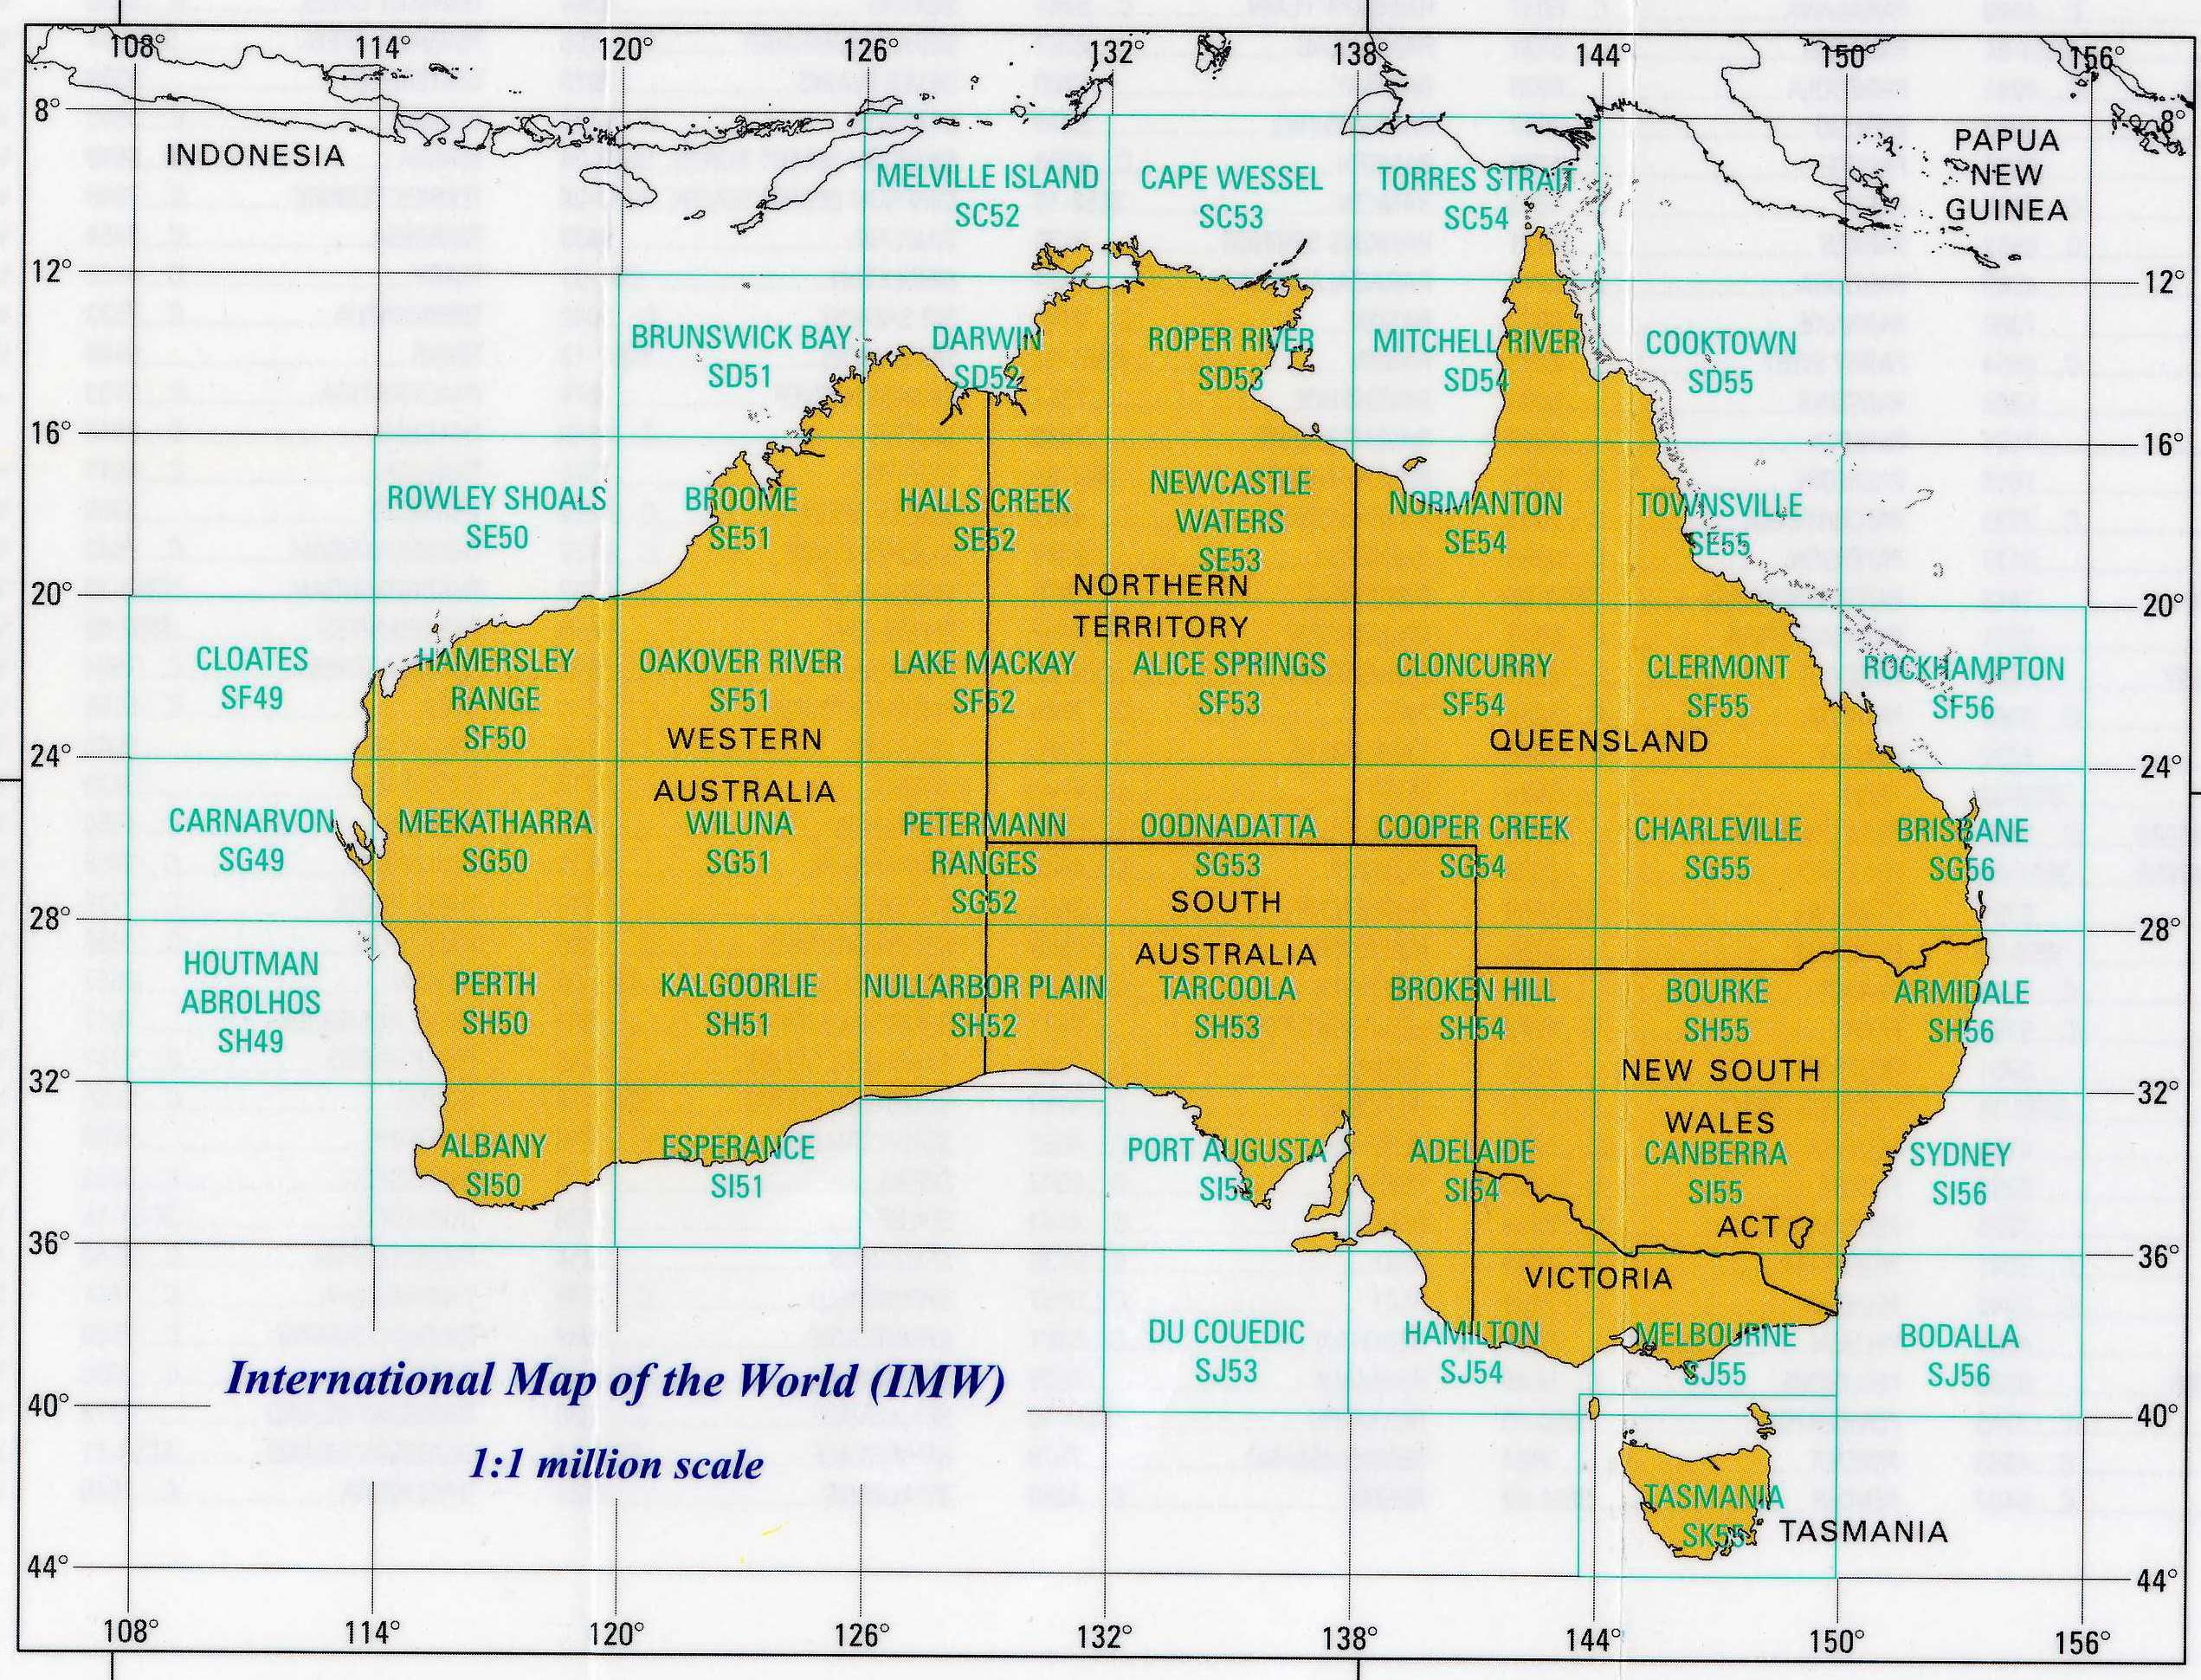 Map Of Australia And Cities.Topographic Maps Intergovernmental Committee On Surveying And Mapping